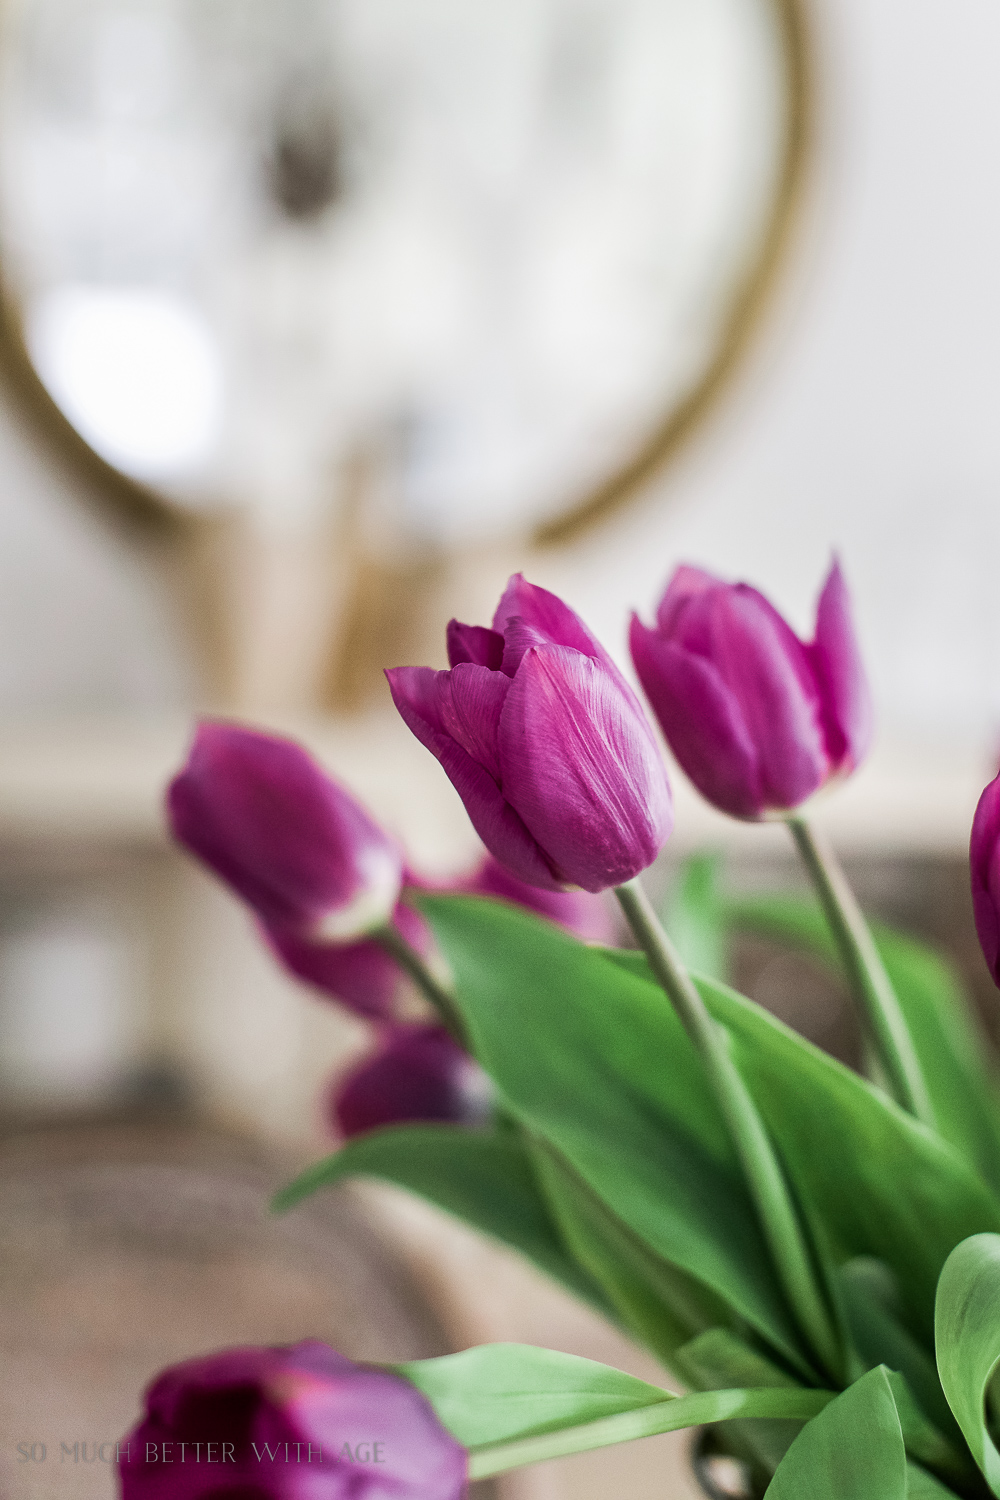 French Vintage Dining Room/close-up of tulips - So Much Better With Age